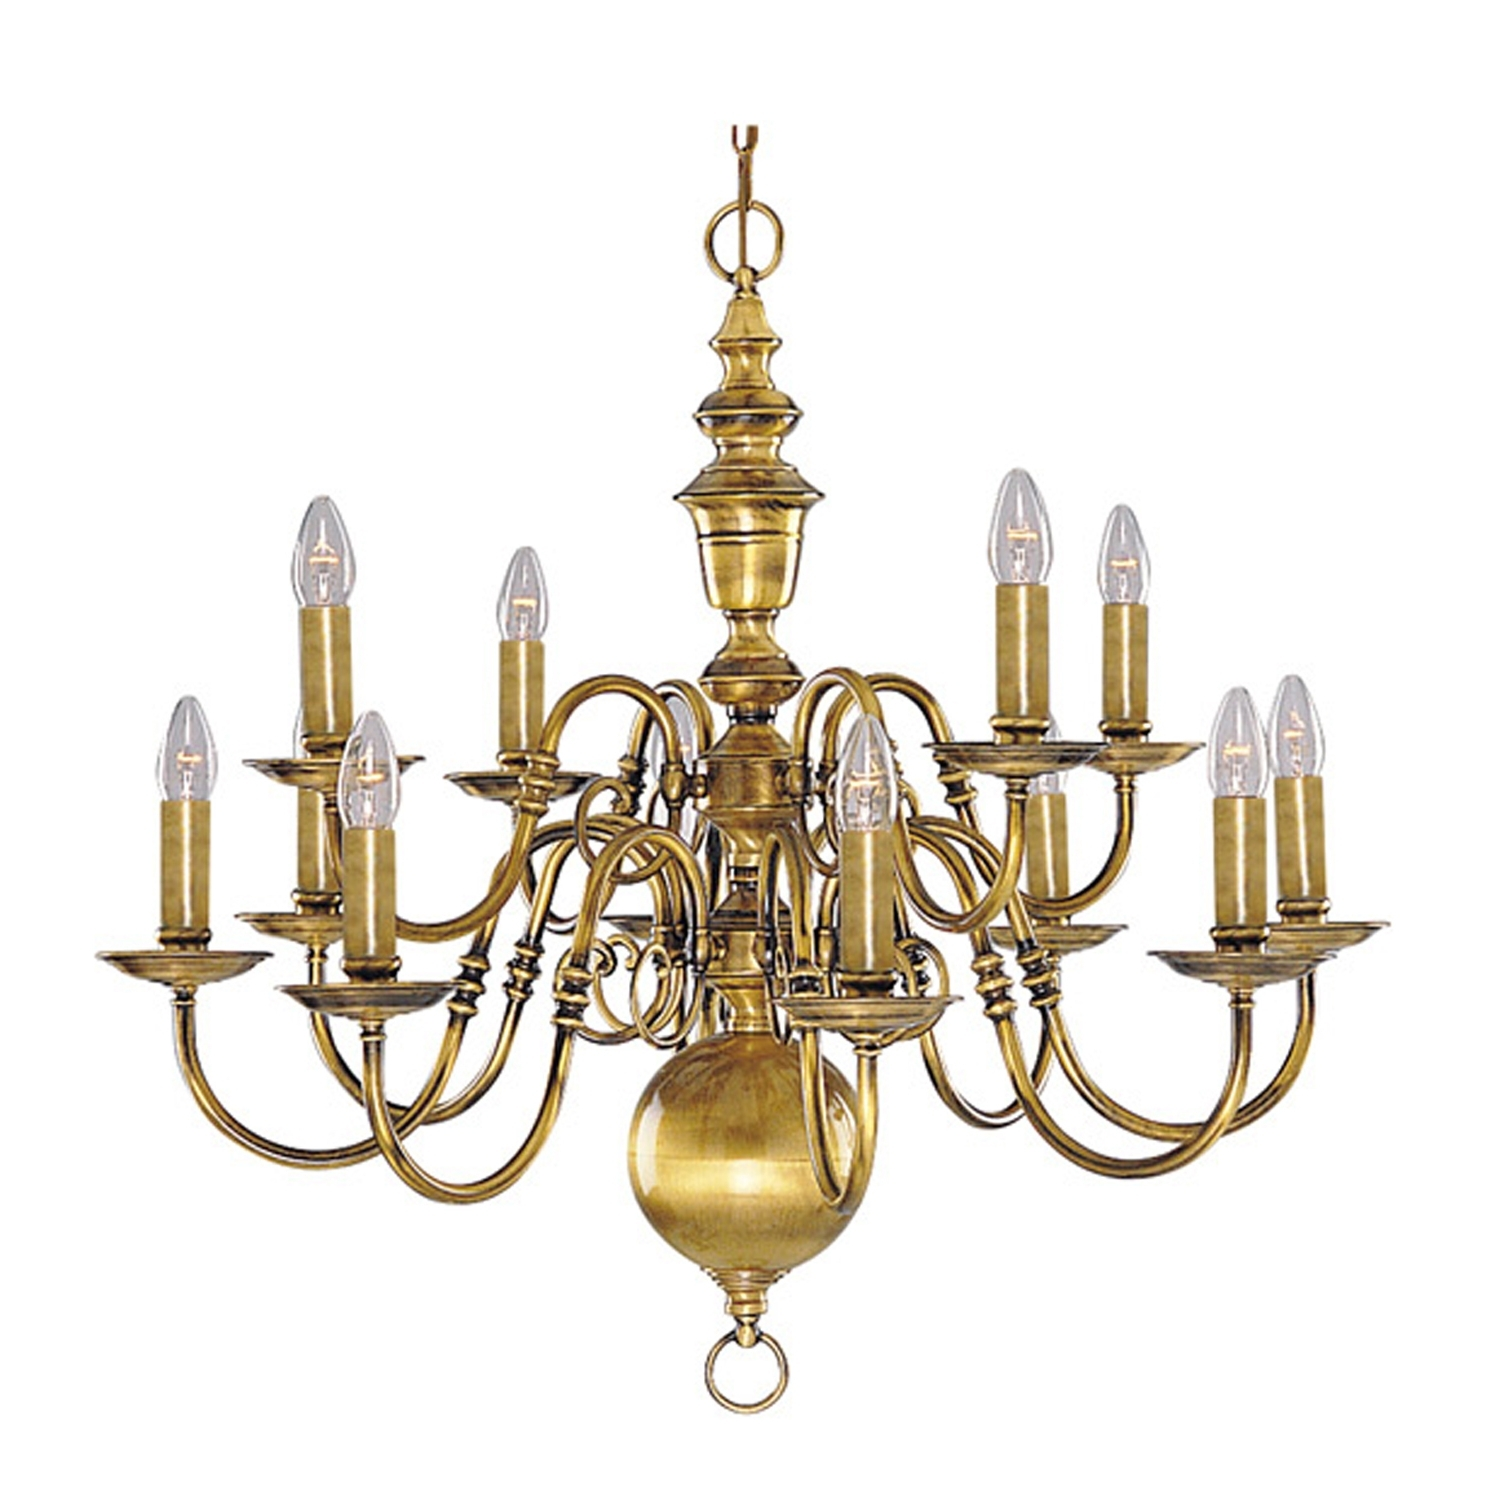 Latest Old Brass Chandelier For Chandeliers Design : Wonderful Interesting Antique Brass Chandelier (View 6 of 15)